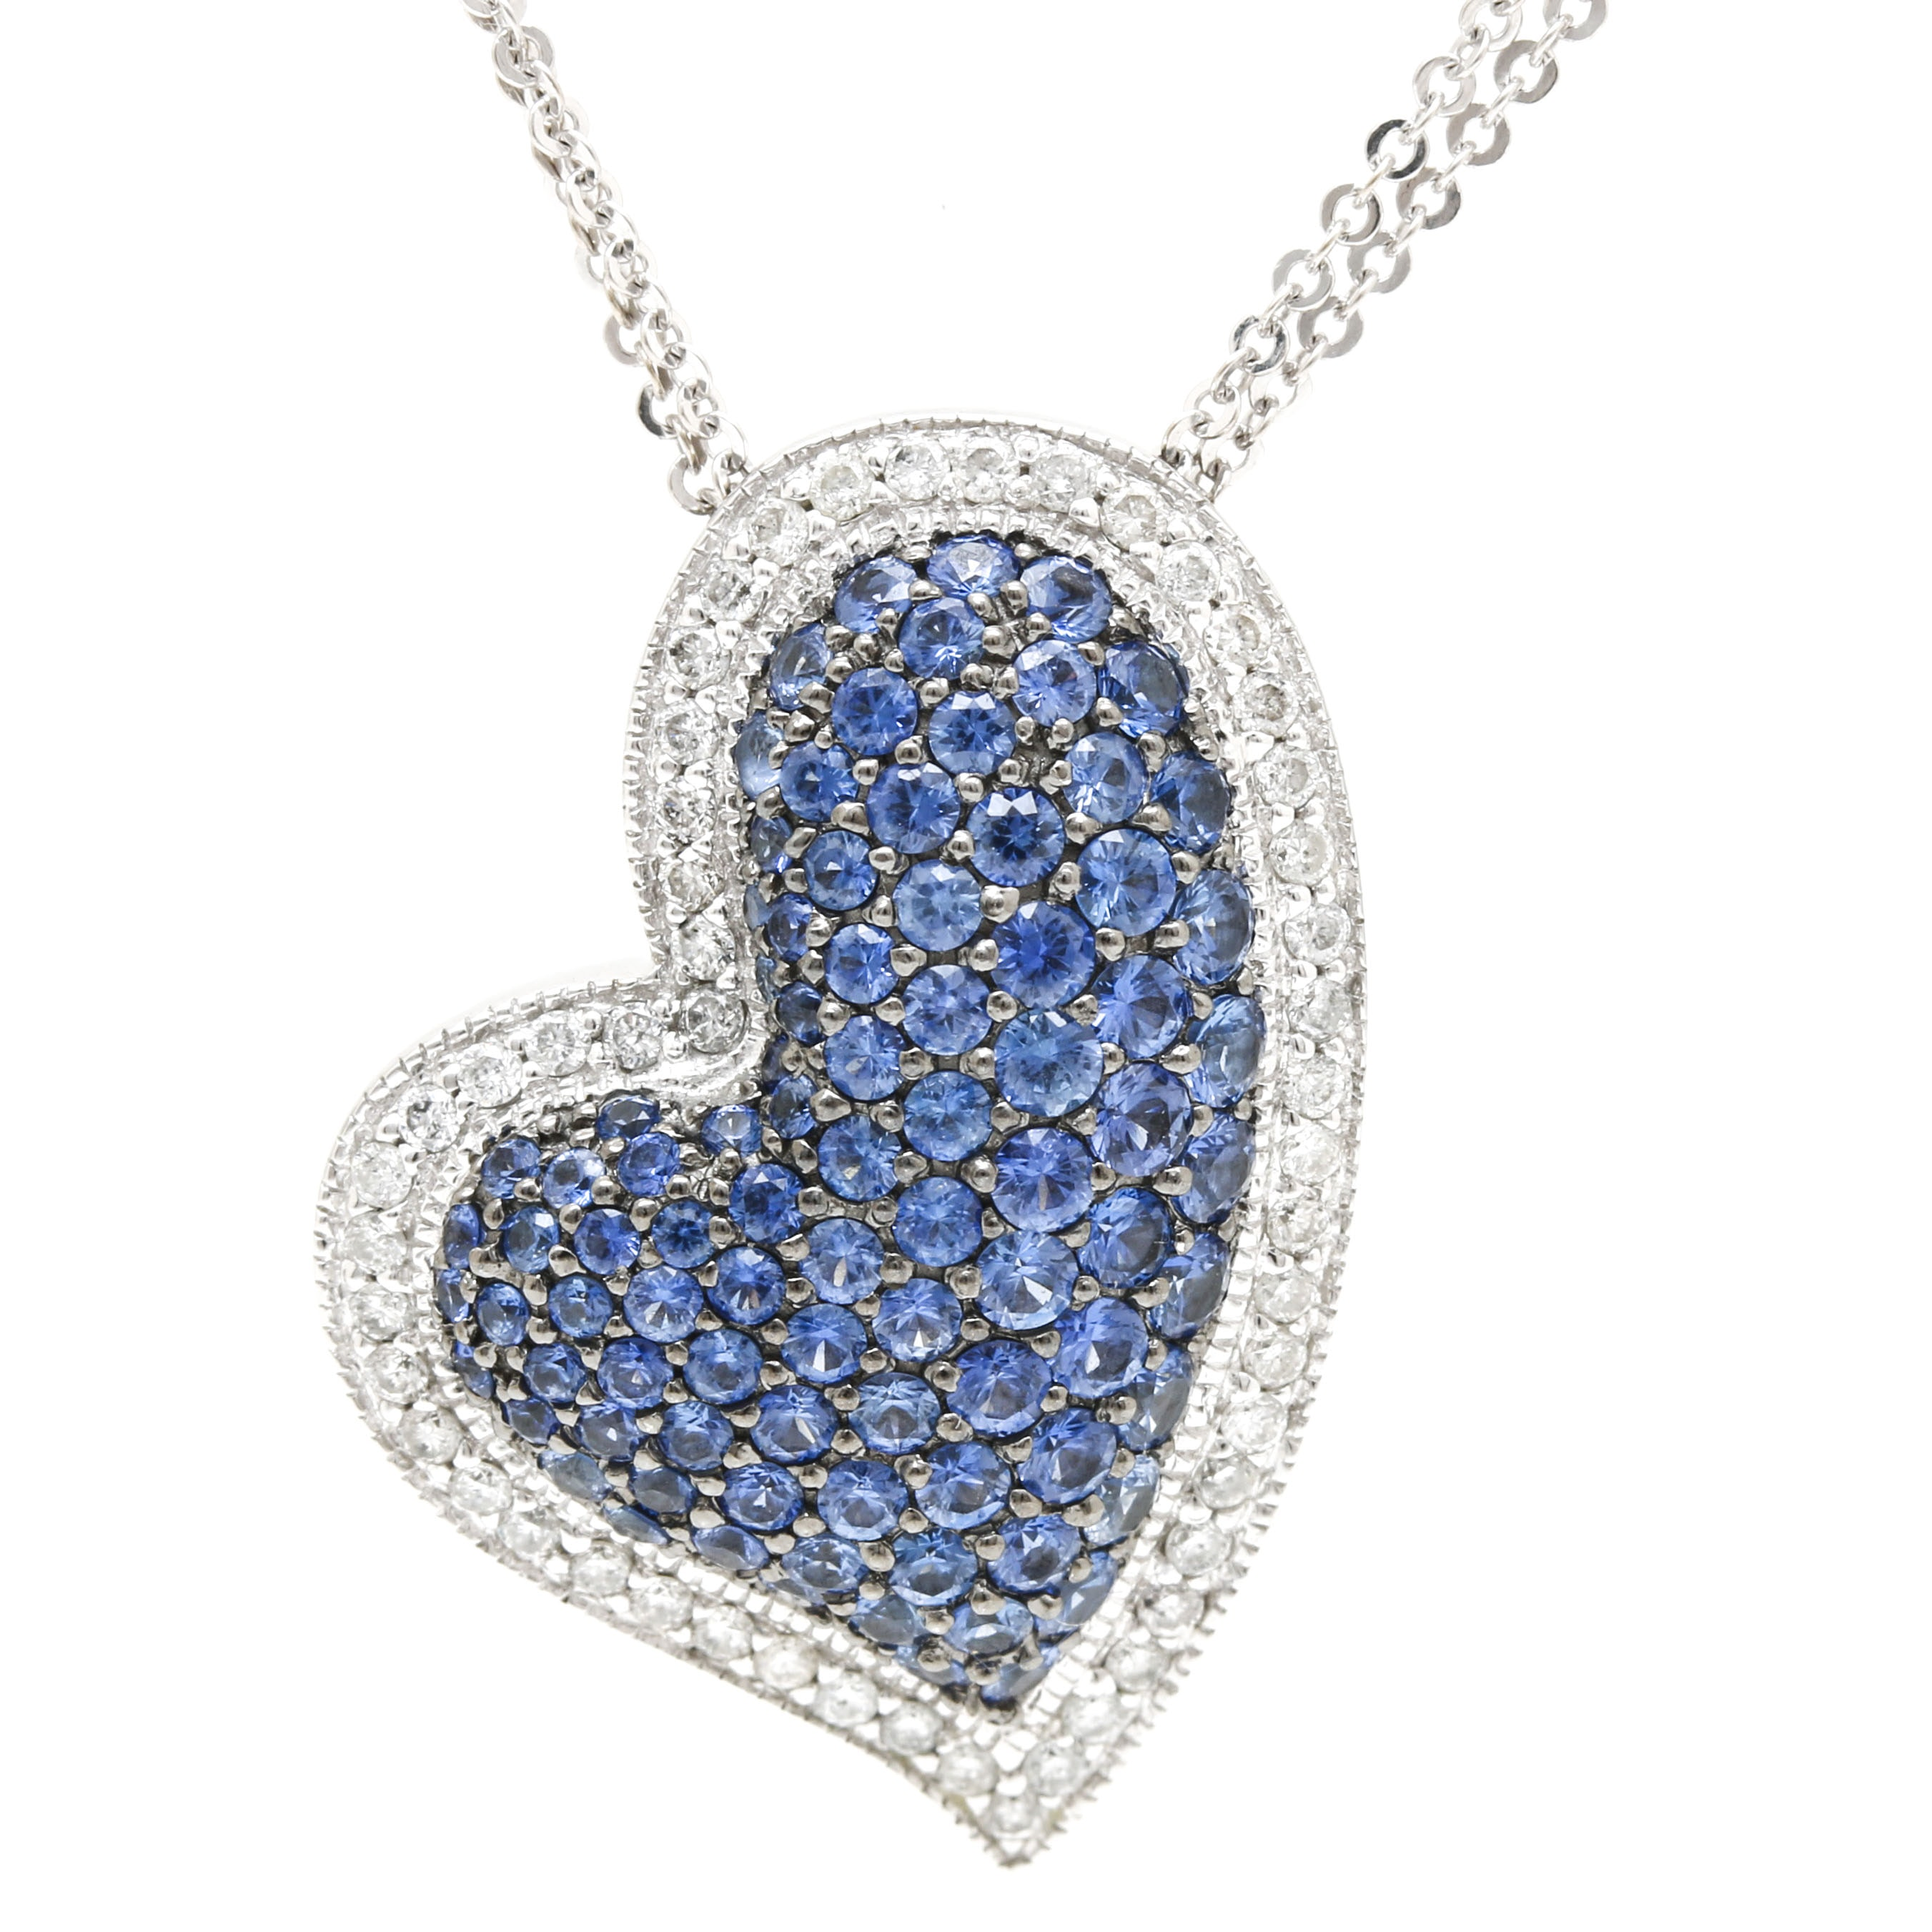 14K White Gold 2.25 CTW Sapphire With Diamond Accents Necklace